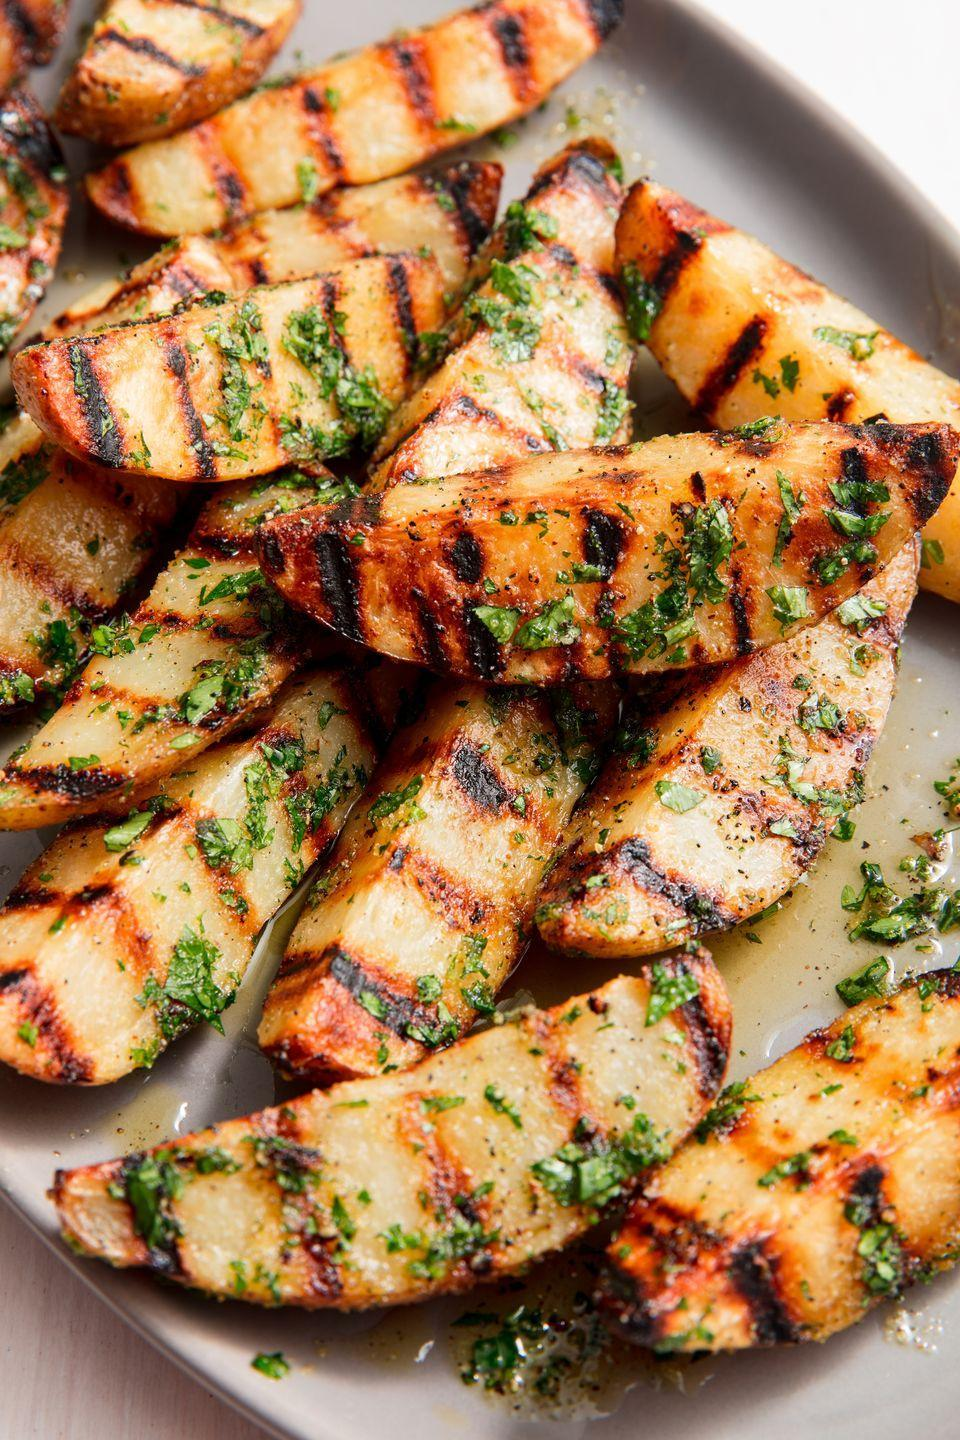 """<p>If you've never thought to grill potatoes before, get ready. The spuds get crispy on the outside and stay creamy on the inside.</p><p>Get the recipe from <a href=""""https://www.delish.com/cooking/recipe-ideas/a20164811/best-grilled-potatoes-recipe/"""" rel=""""nofollow noopener"""" target=""""_blank"""" data-ylk=""""slk:Delish"""" class=""""link rapid-noclick-resp"""">Delish</a>. </p>"""